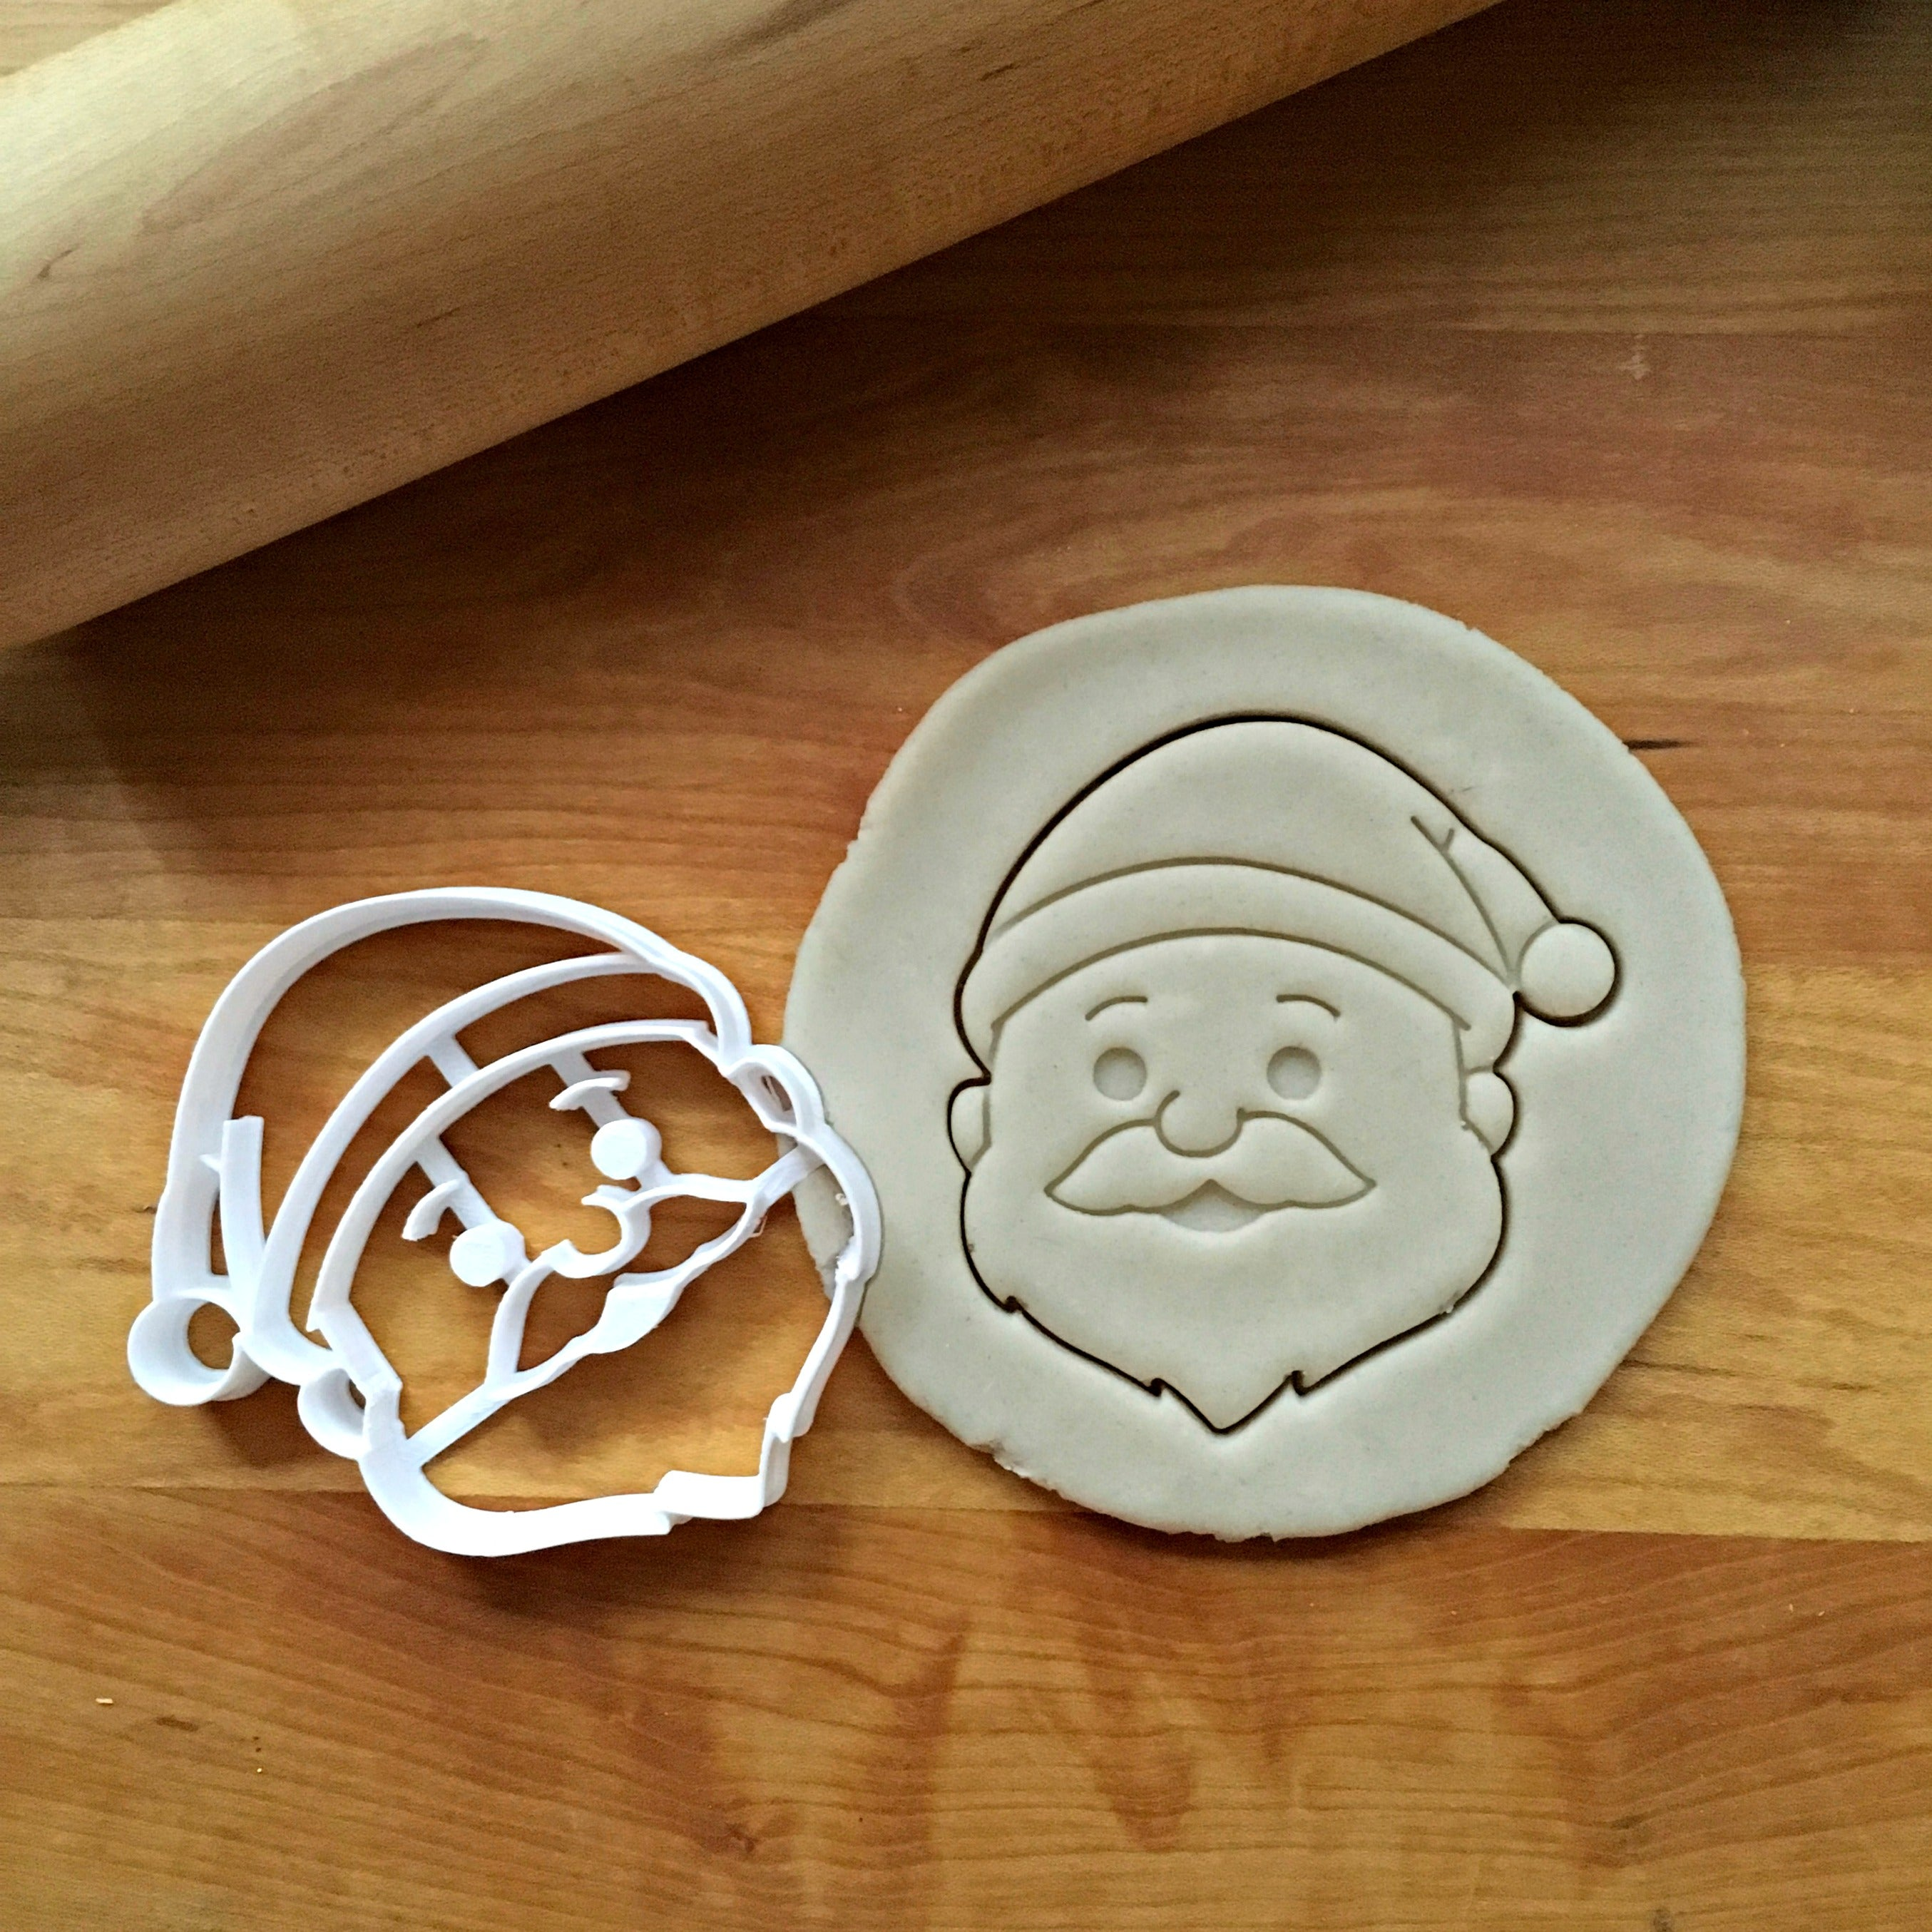 Santa Claus Cookie Cutter